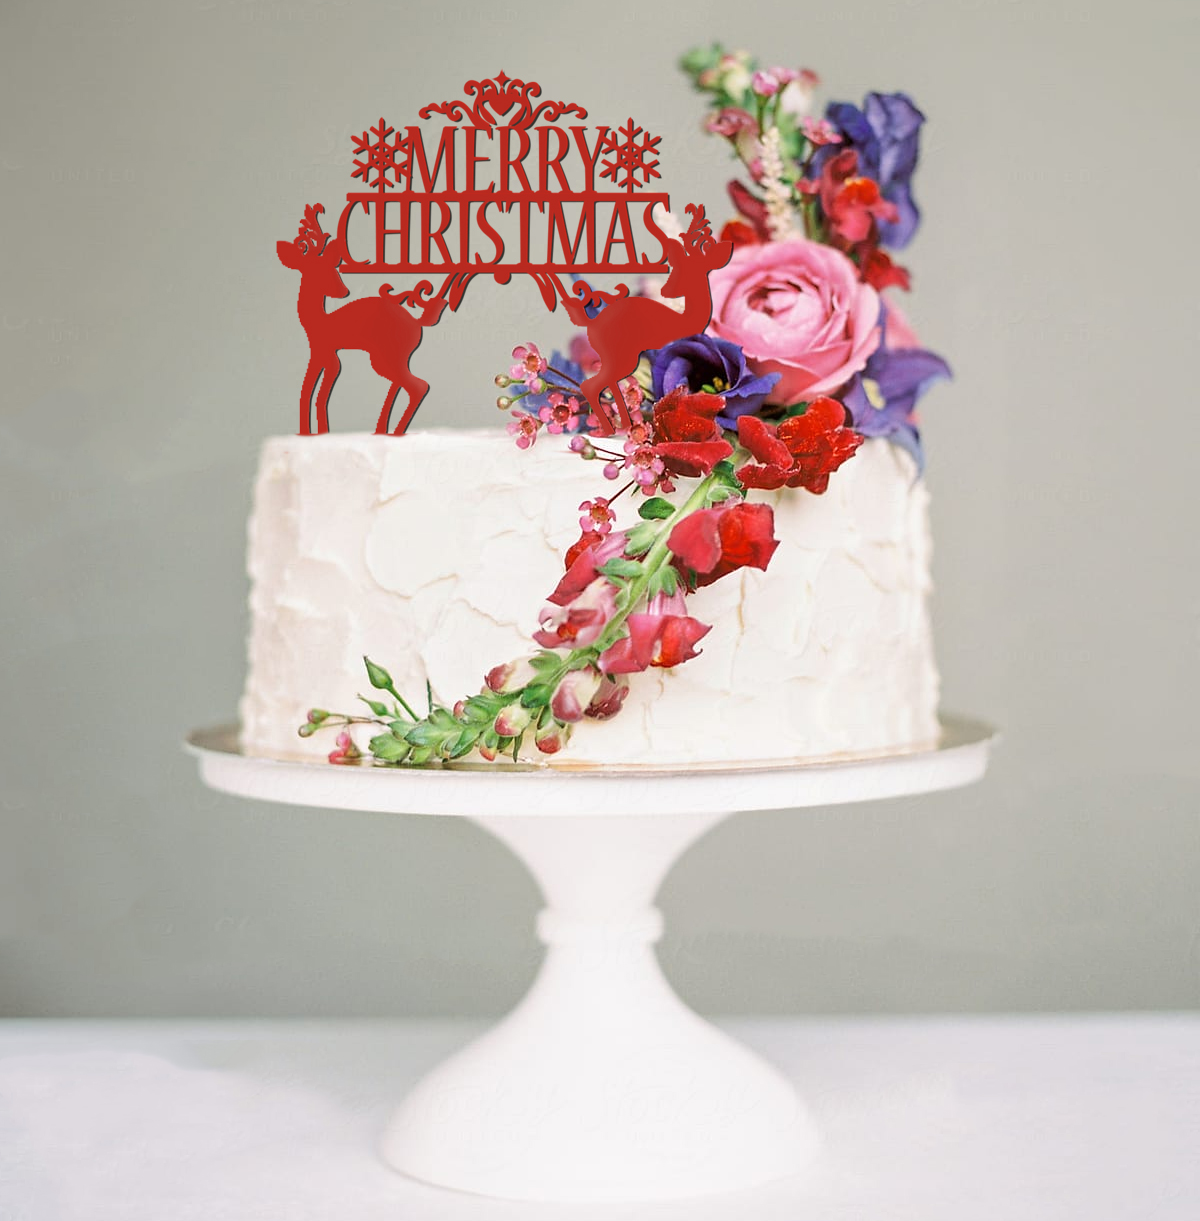 CHRISTMAS Acrylic Cake Topper - by Sugar Crafty